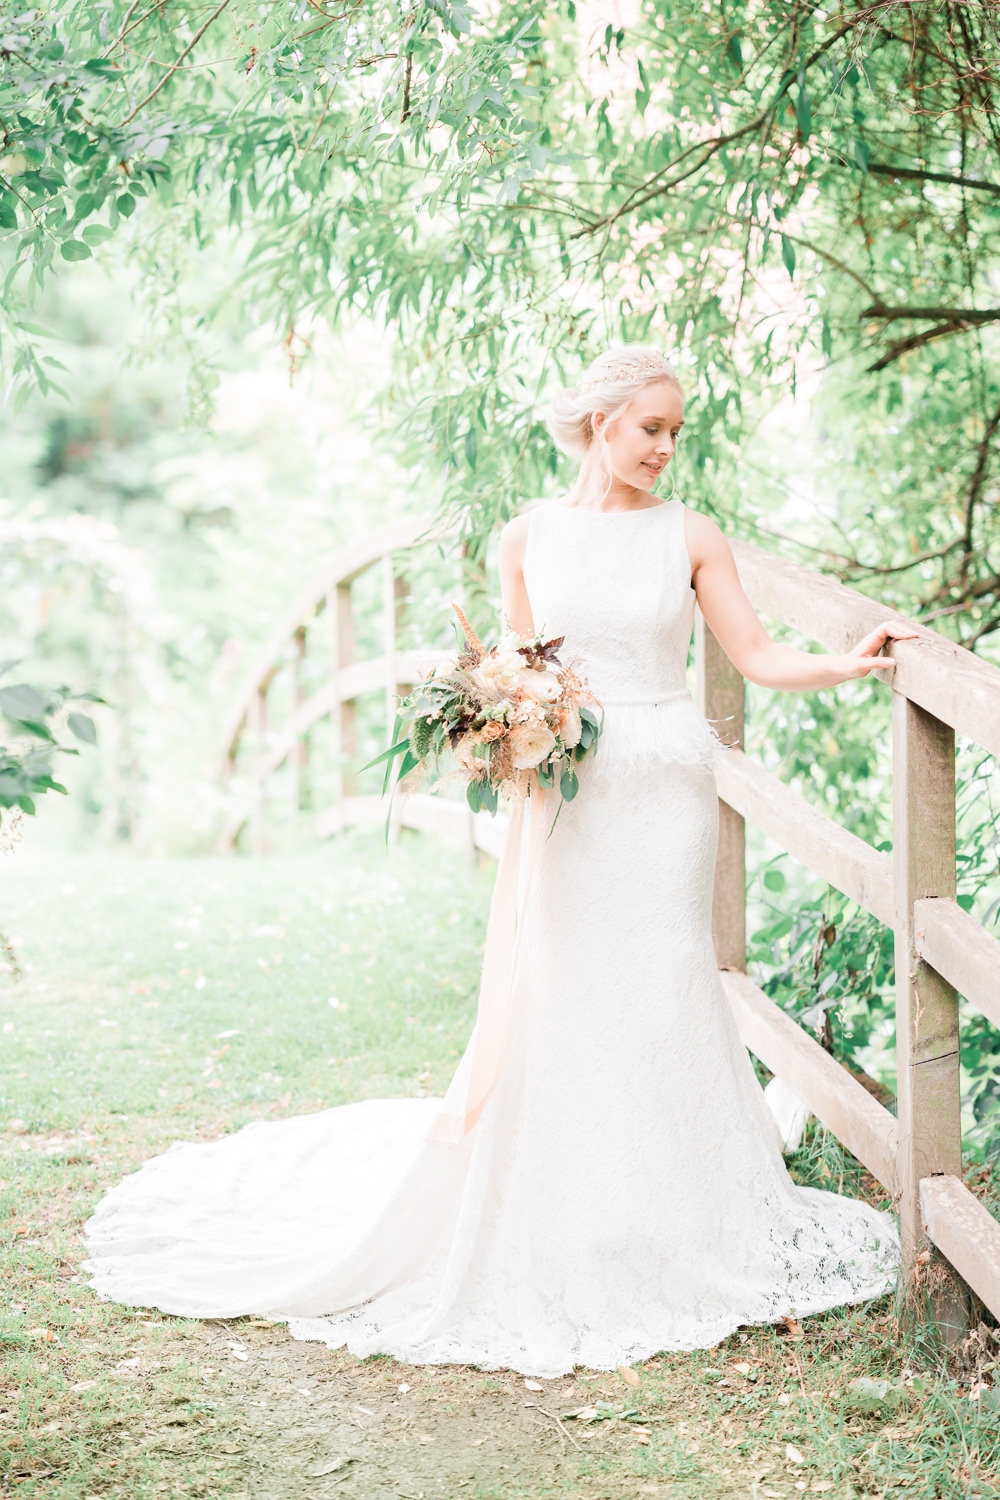 Dress Gown Fit Flare Lace Train Straps Bride Bridal Golden Autumnal Wedding Ideas Joanna Briggs Photography